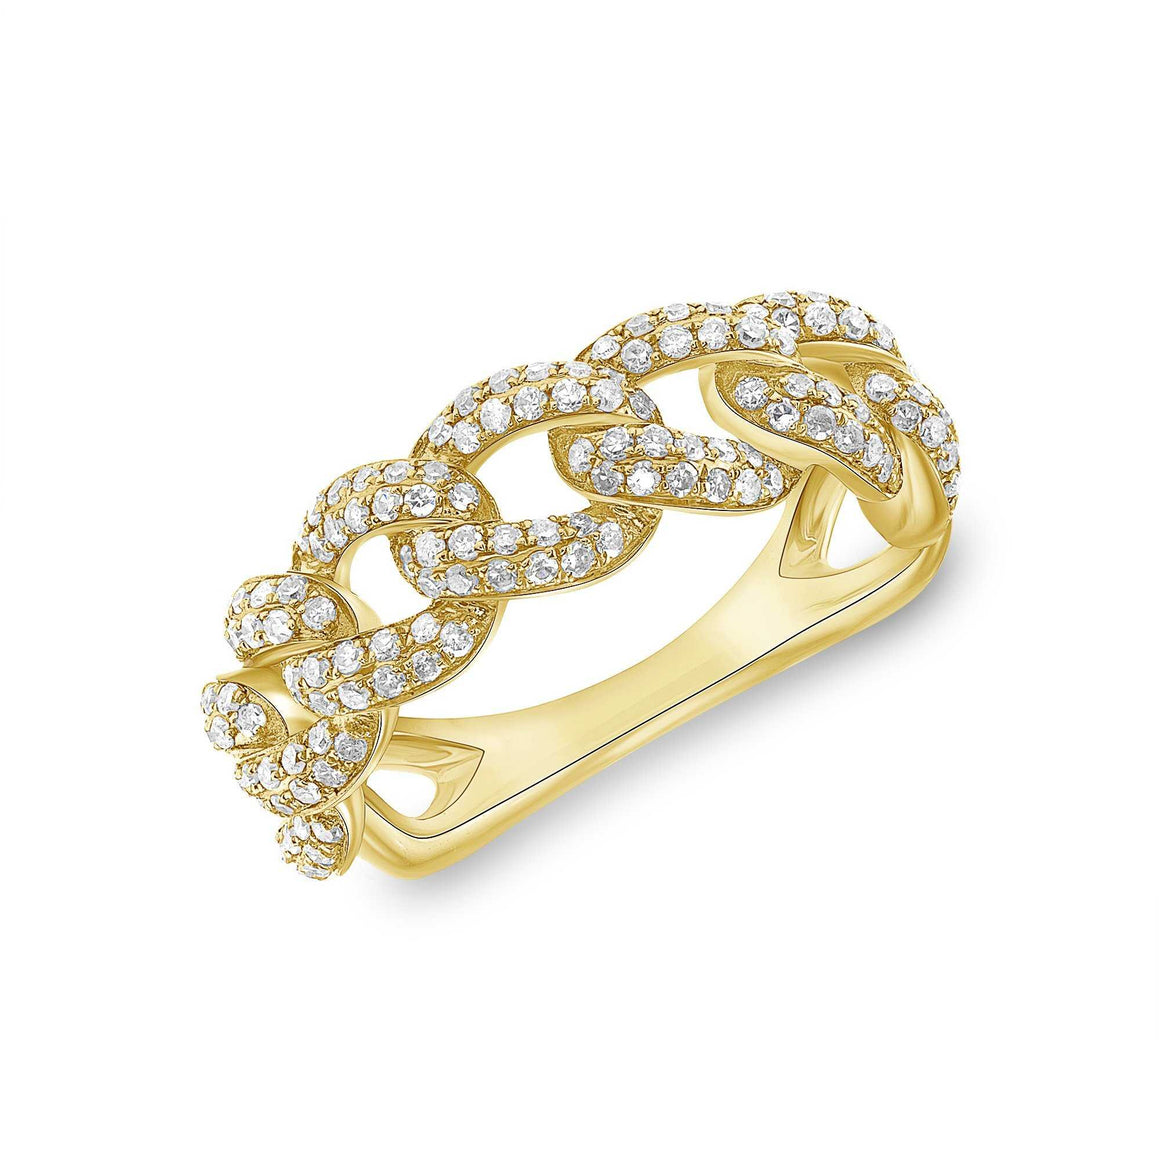 14K YELLOW GOLD, DIAMOND, ROUND CONNECT RING - Euro Time & Jewels